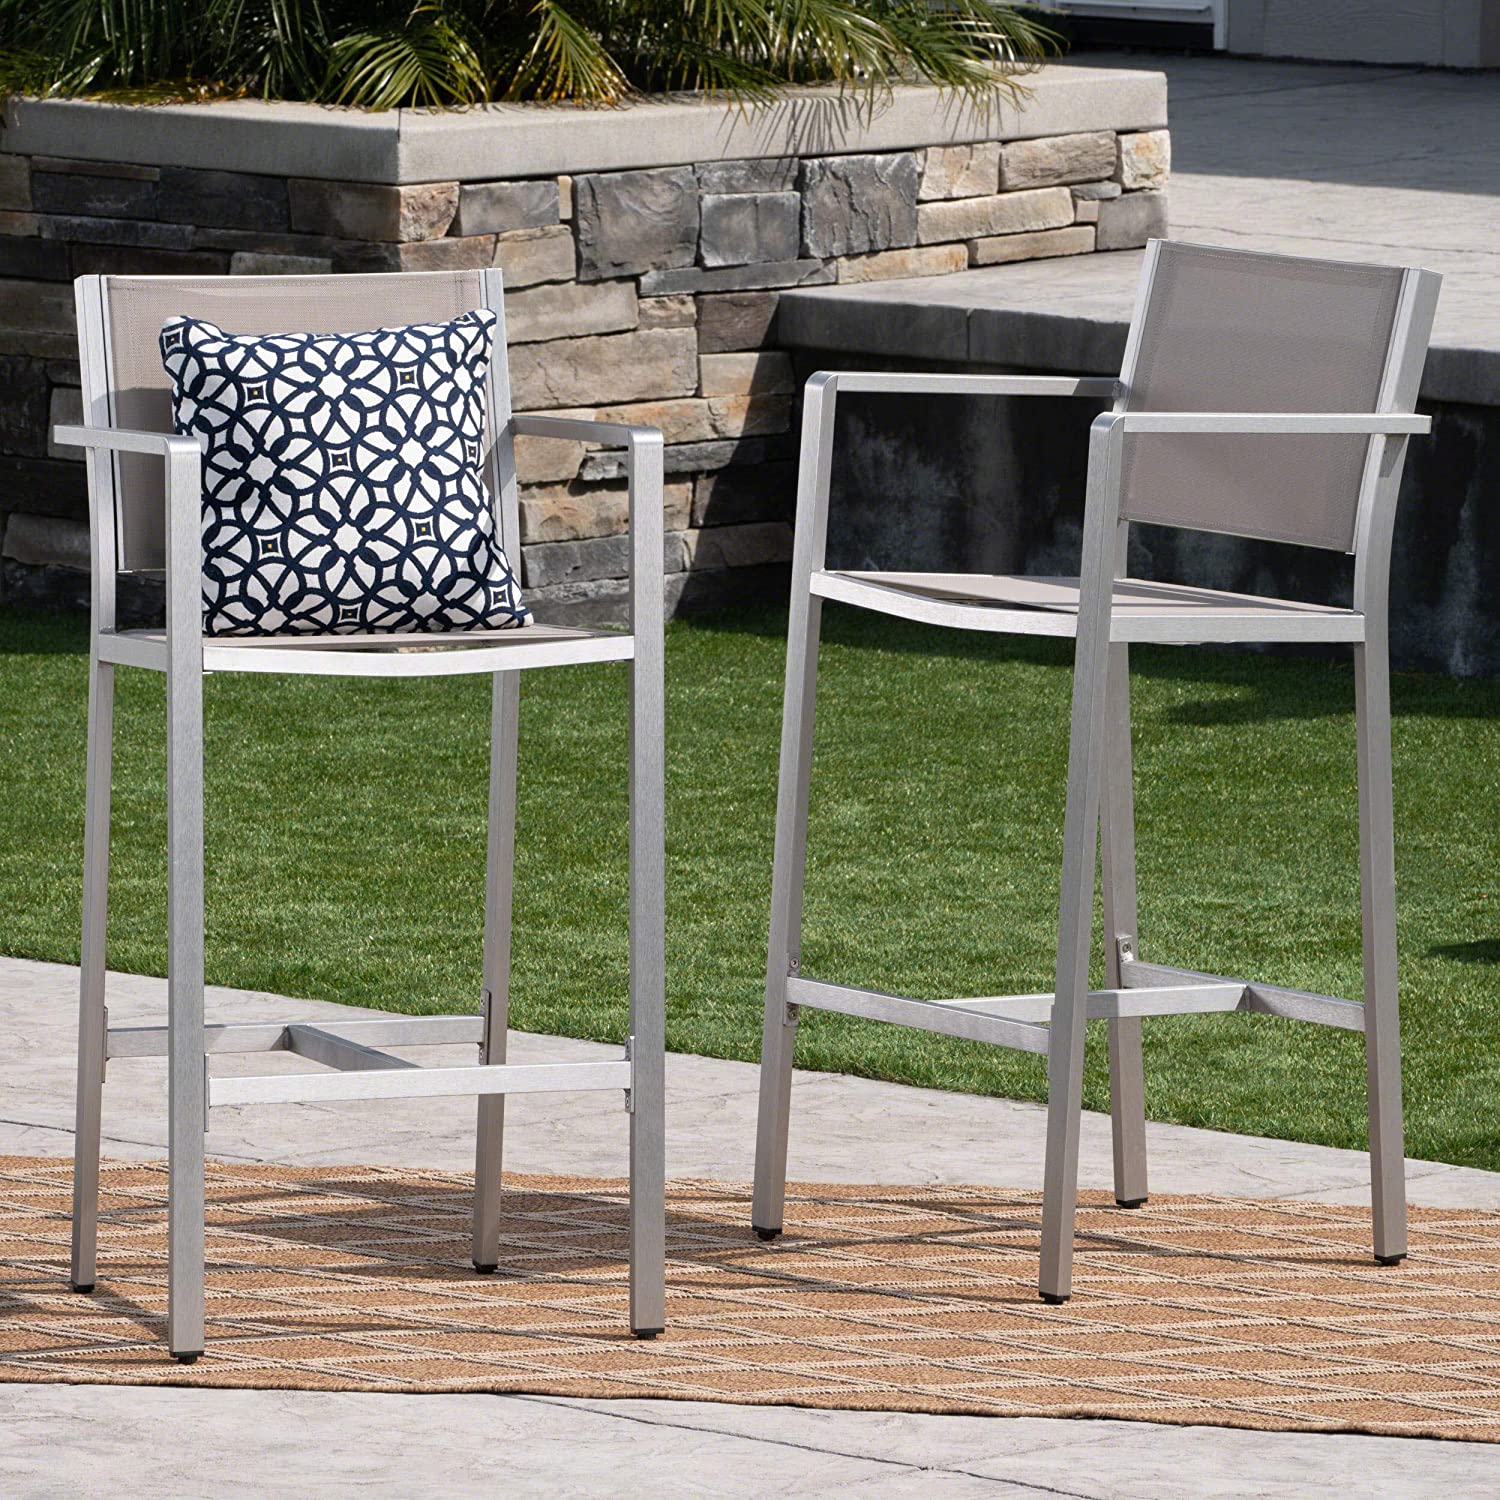 Christopher Knight Home 304258 Tammy Coral Outdoor Grey Mesh 29.50 Inch Barstools with Silver Rust-Proof Aluminum Frame (Set of 2),